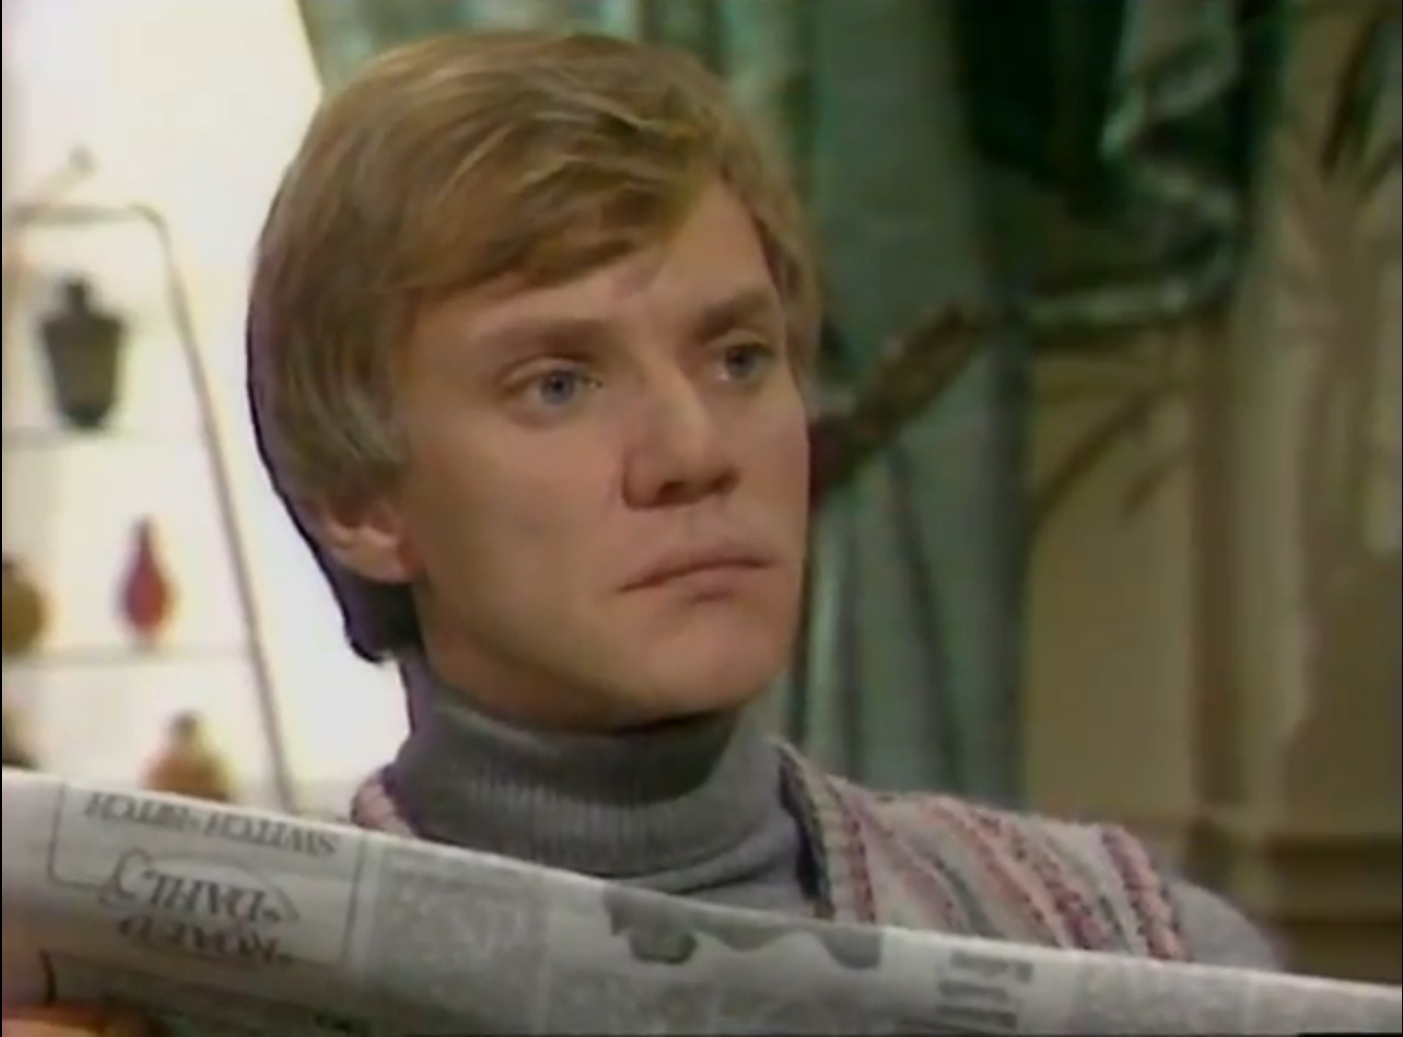 malcolm mcdowell images mcdowall - photo #22